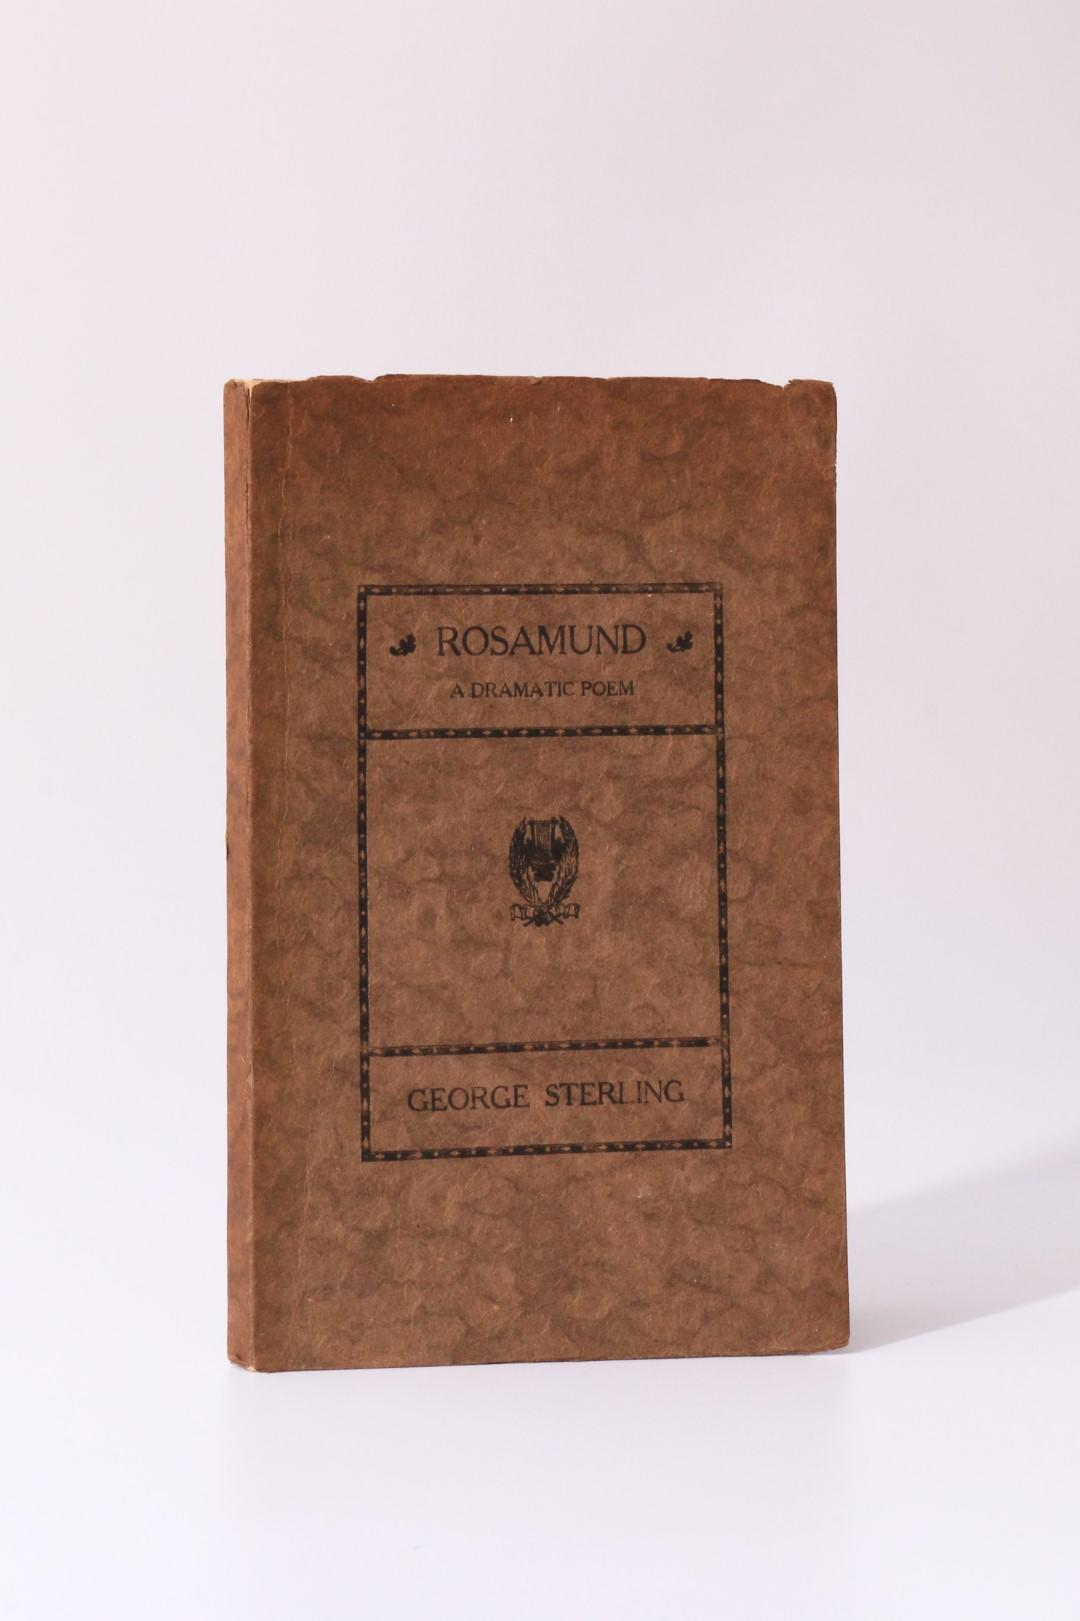 George Sterling - Rosamund: A Dramatic Poem - A.M. Robertson, 1920, Signed Limited Edition.